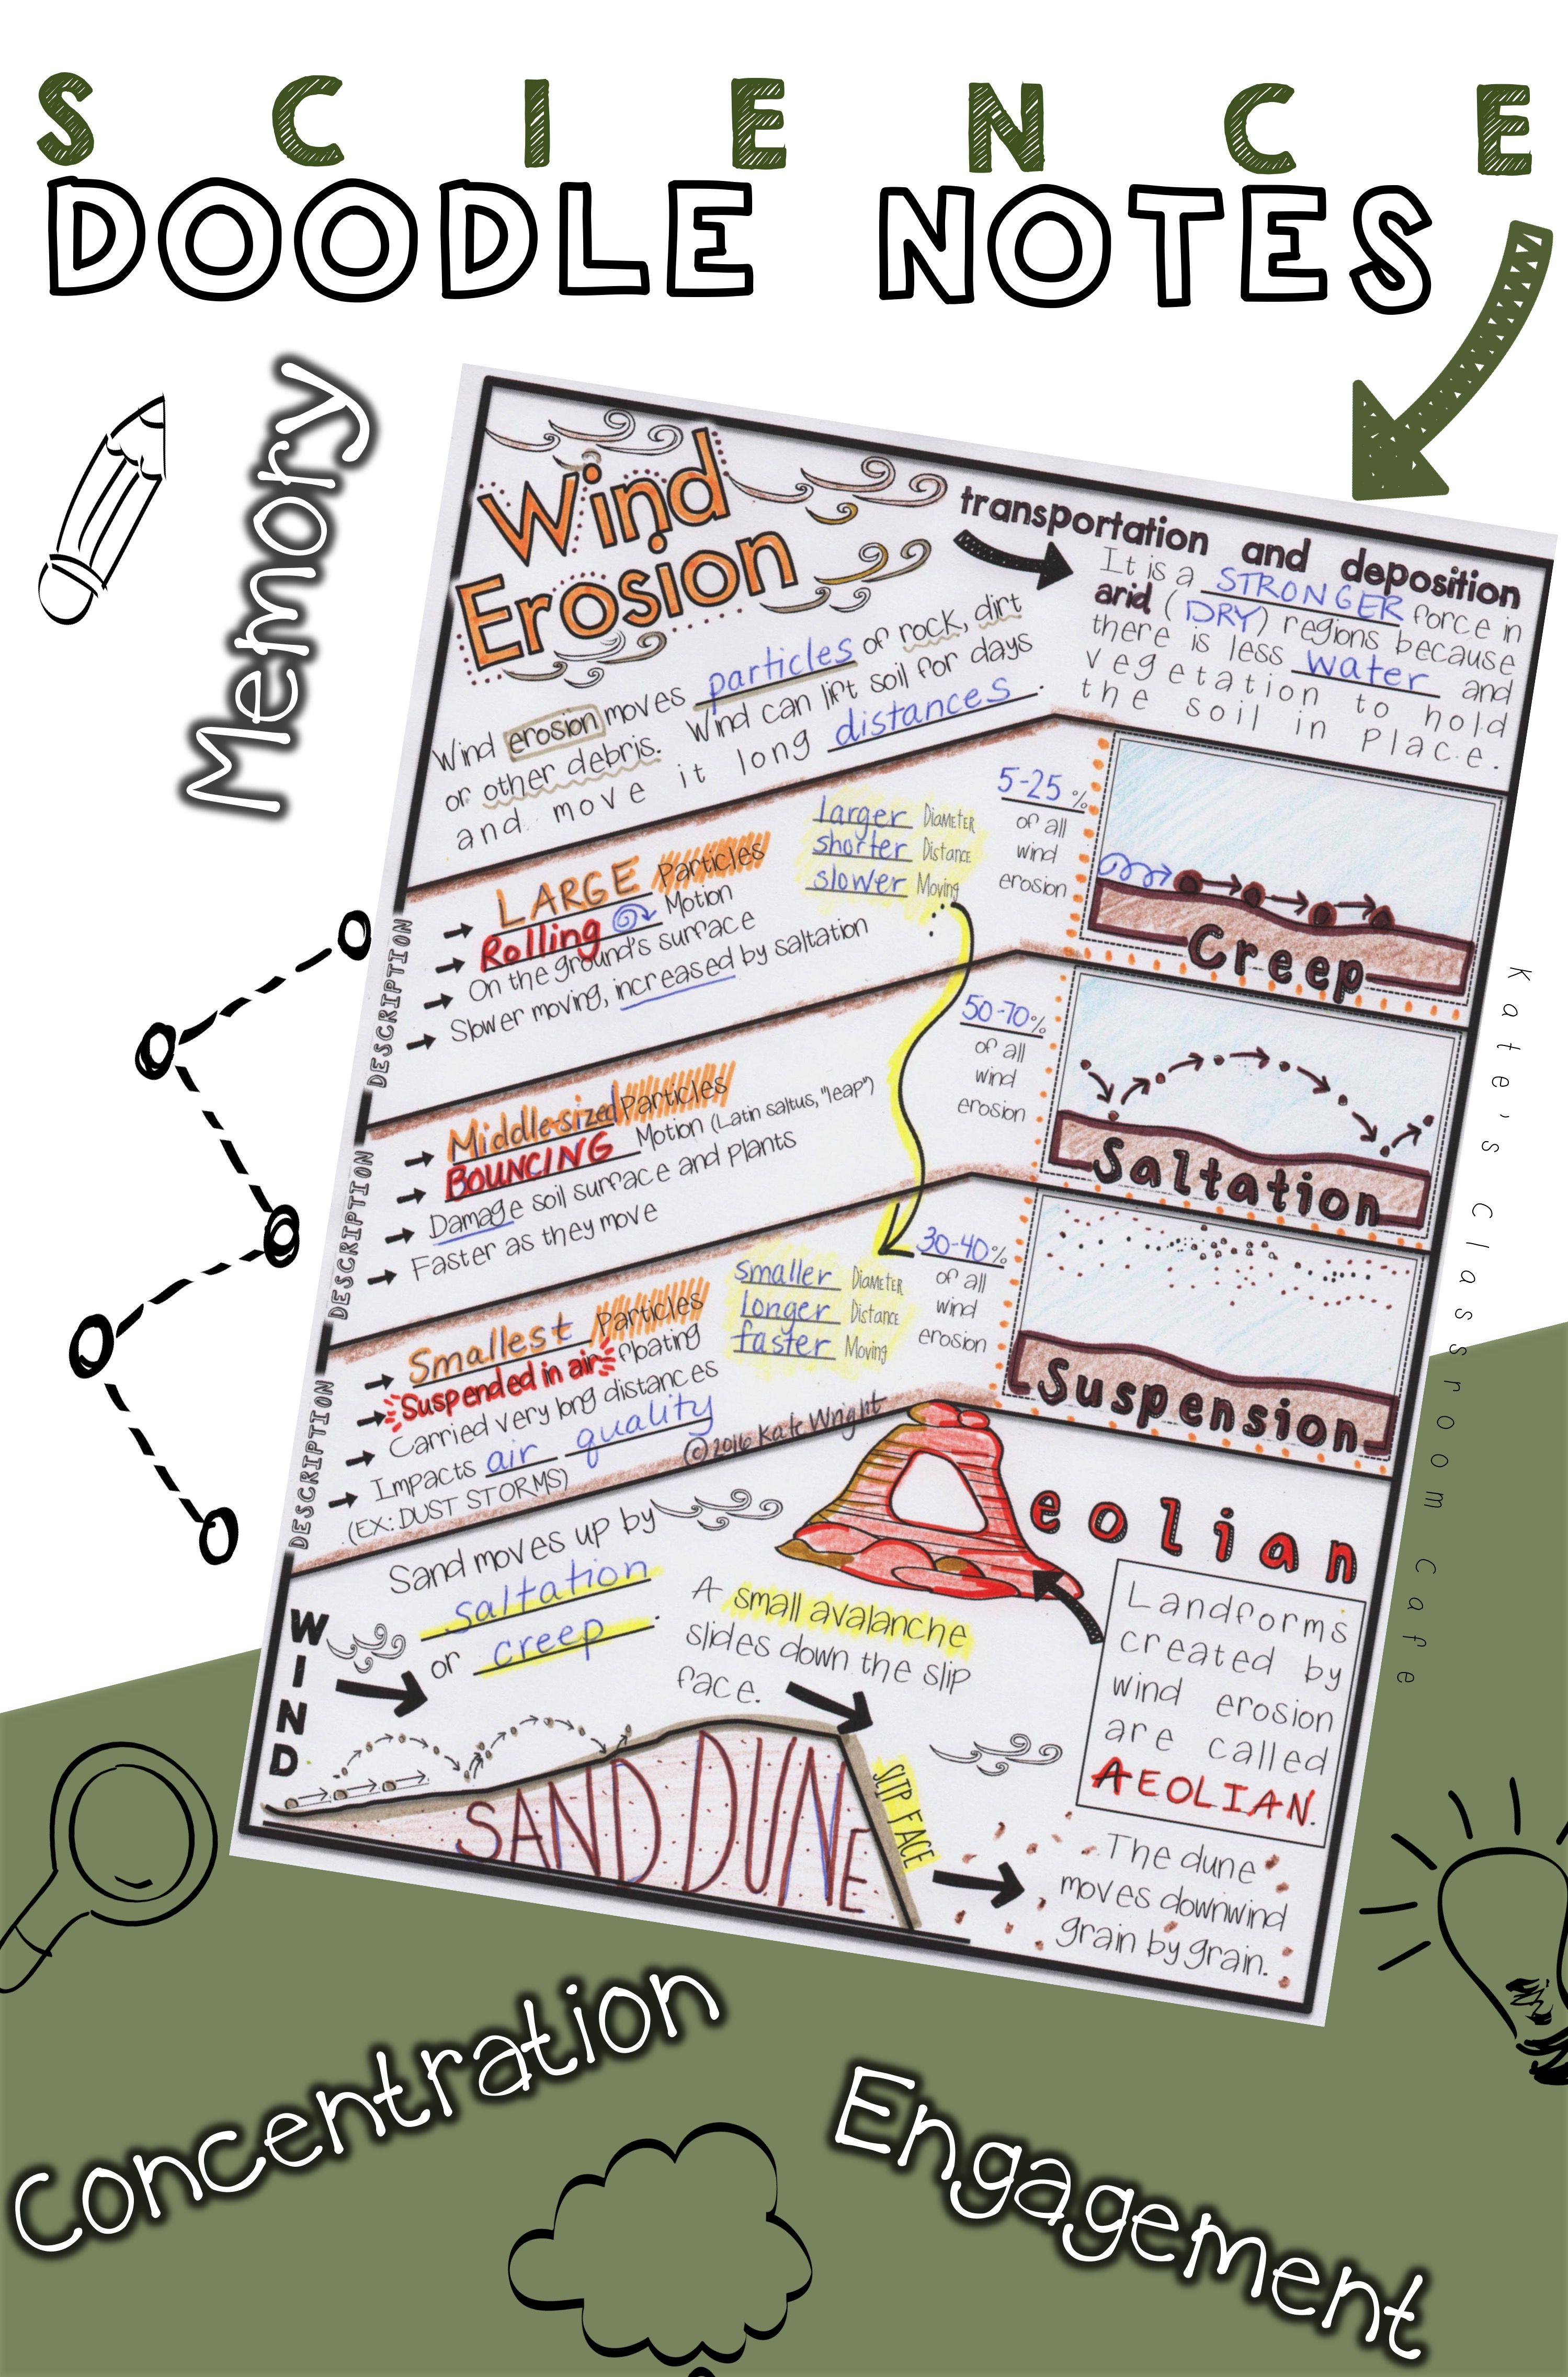 Wind Erosion Earth Science Doodle Notes